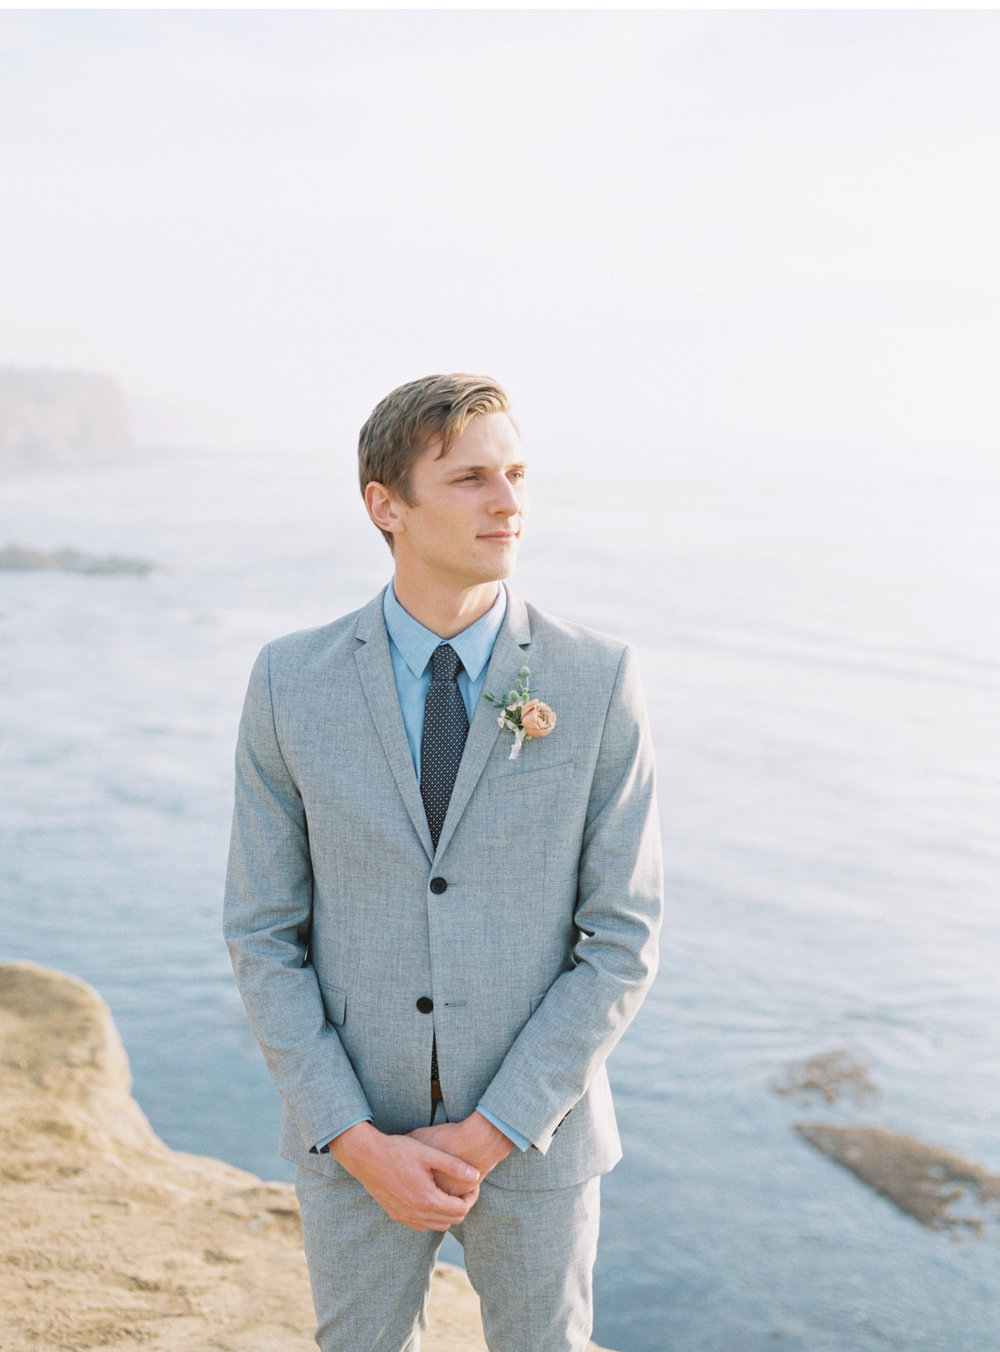 San-Clemente-Wedding-Photographer-Hawaii-Natalie-Schutt-Photography_03.jpg